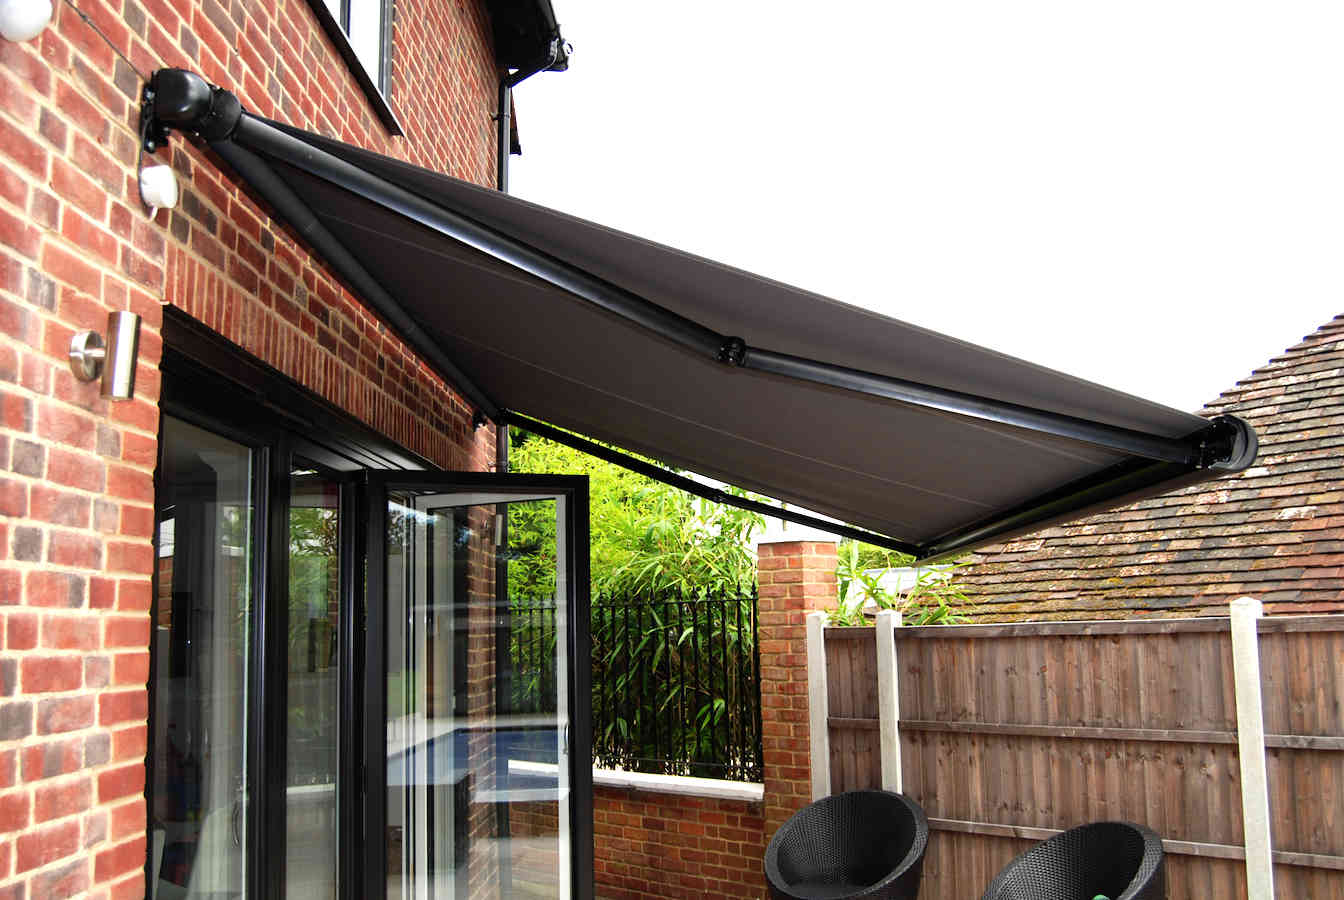 Uhlman Giant Parasol And Retractable Awning Loughton 04